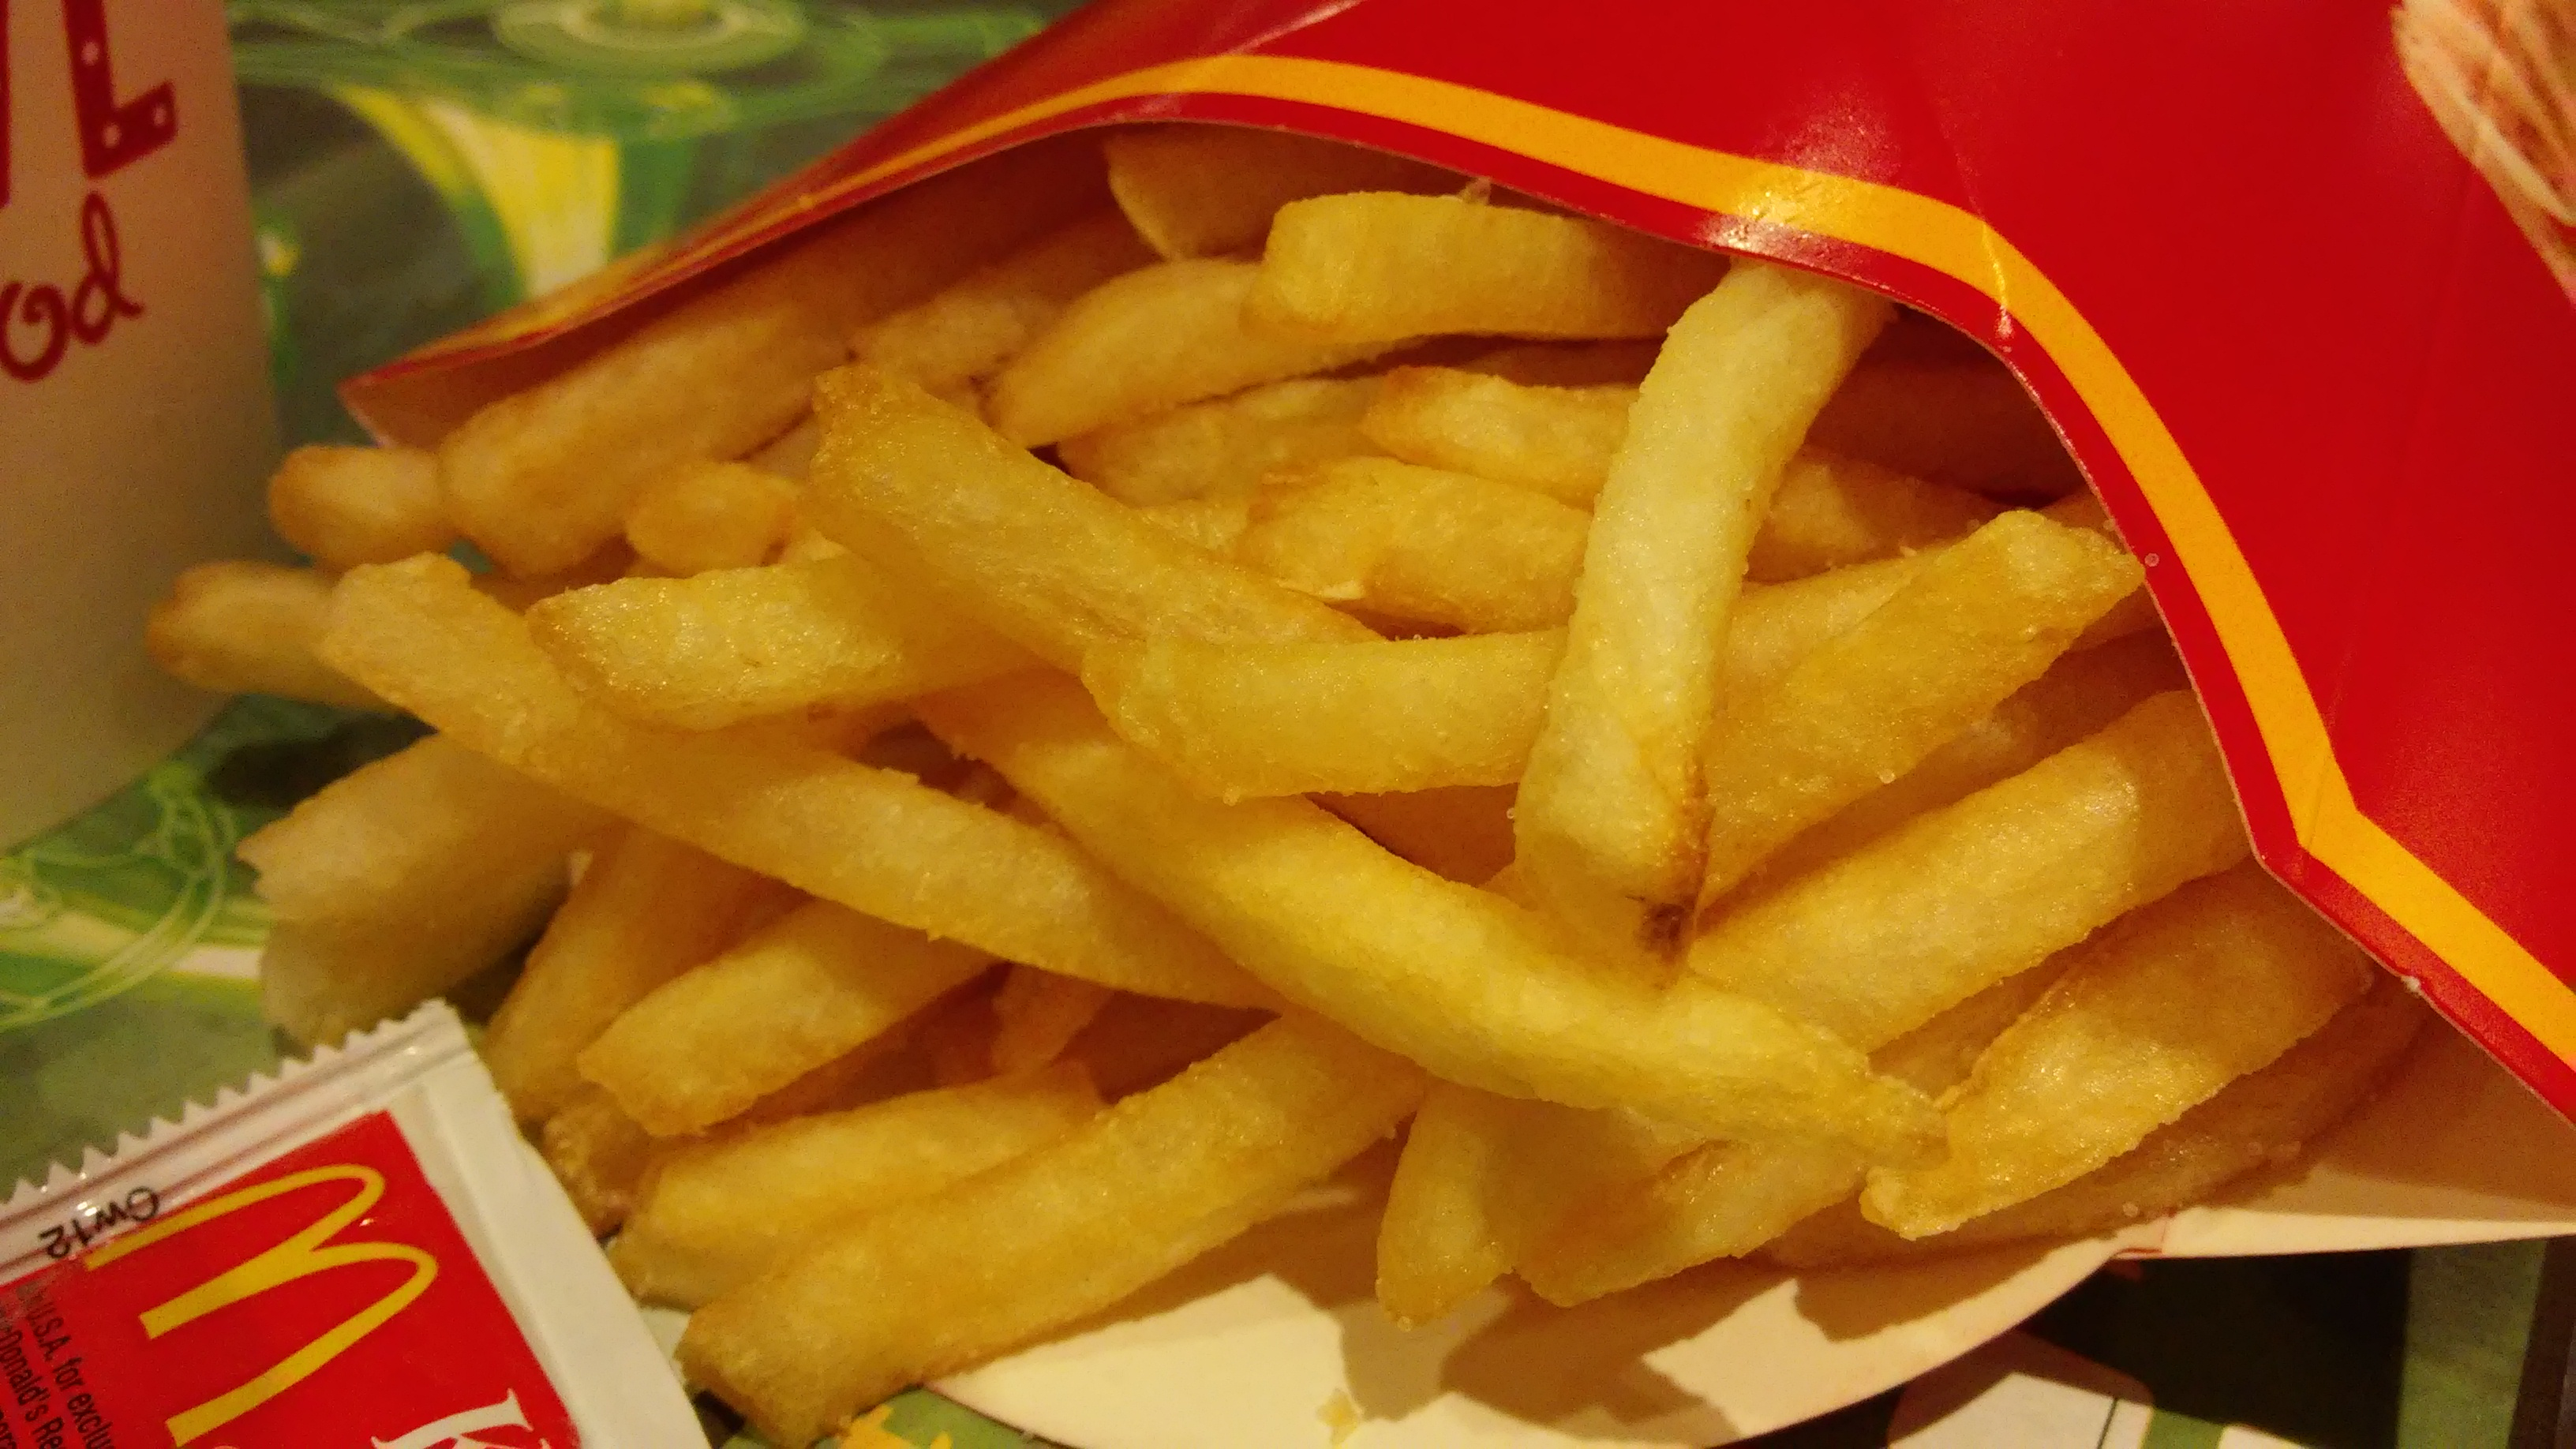 https://i0.wp.com/upload.wikimedia.org/wikipedia/commons/1/17/HK_Kln_Bay_Telford_Plaza_McDonalds_Restaurant_food_French_fries_Nov-2014_LG2.jpg